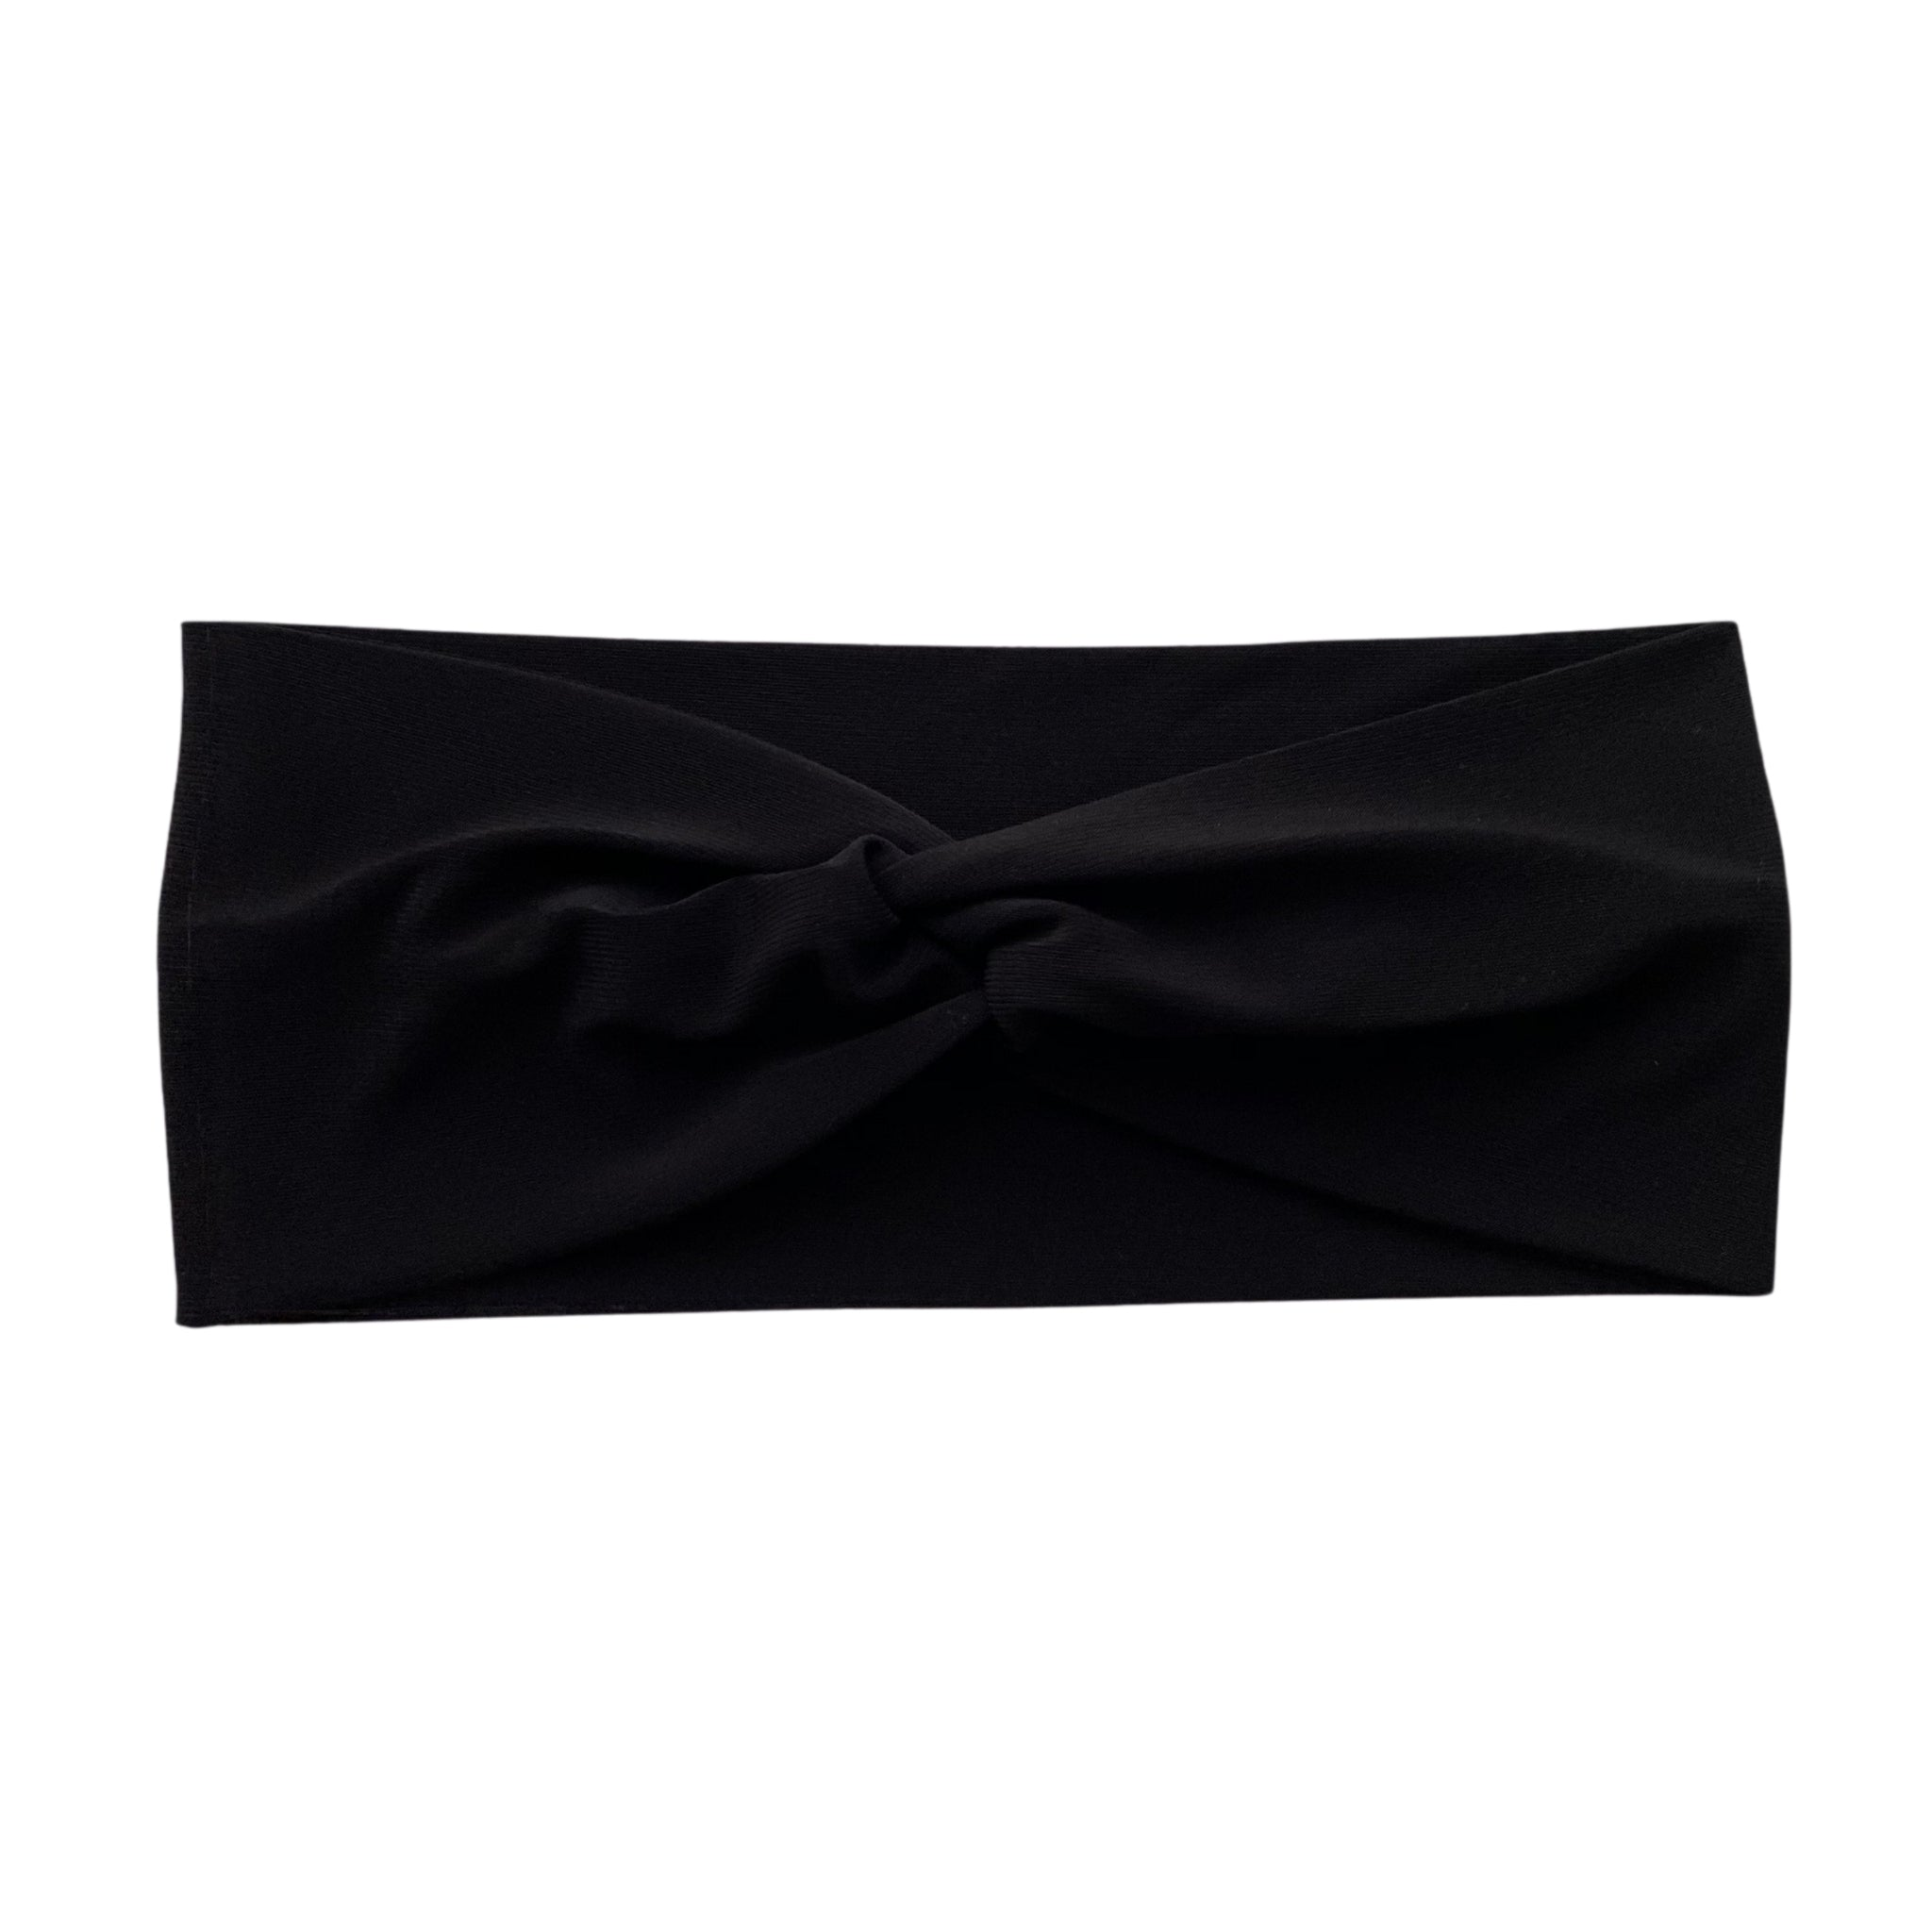 Solid black semi-shiny faux knot headband